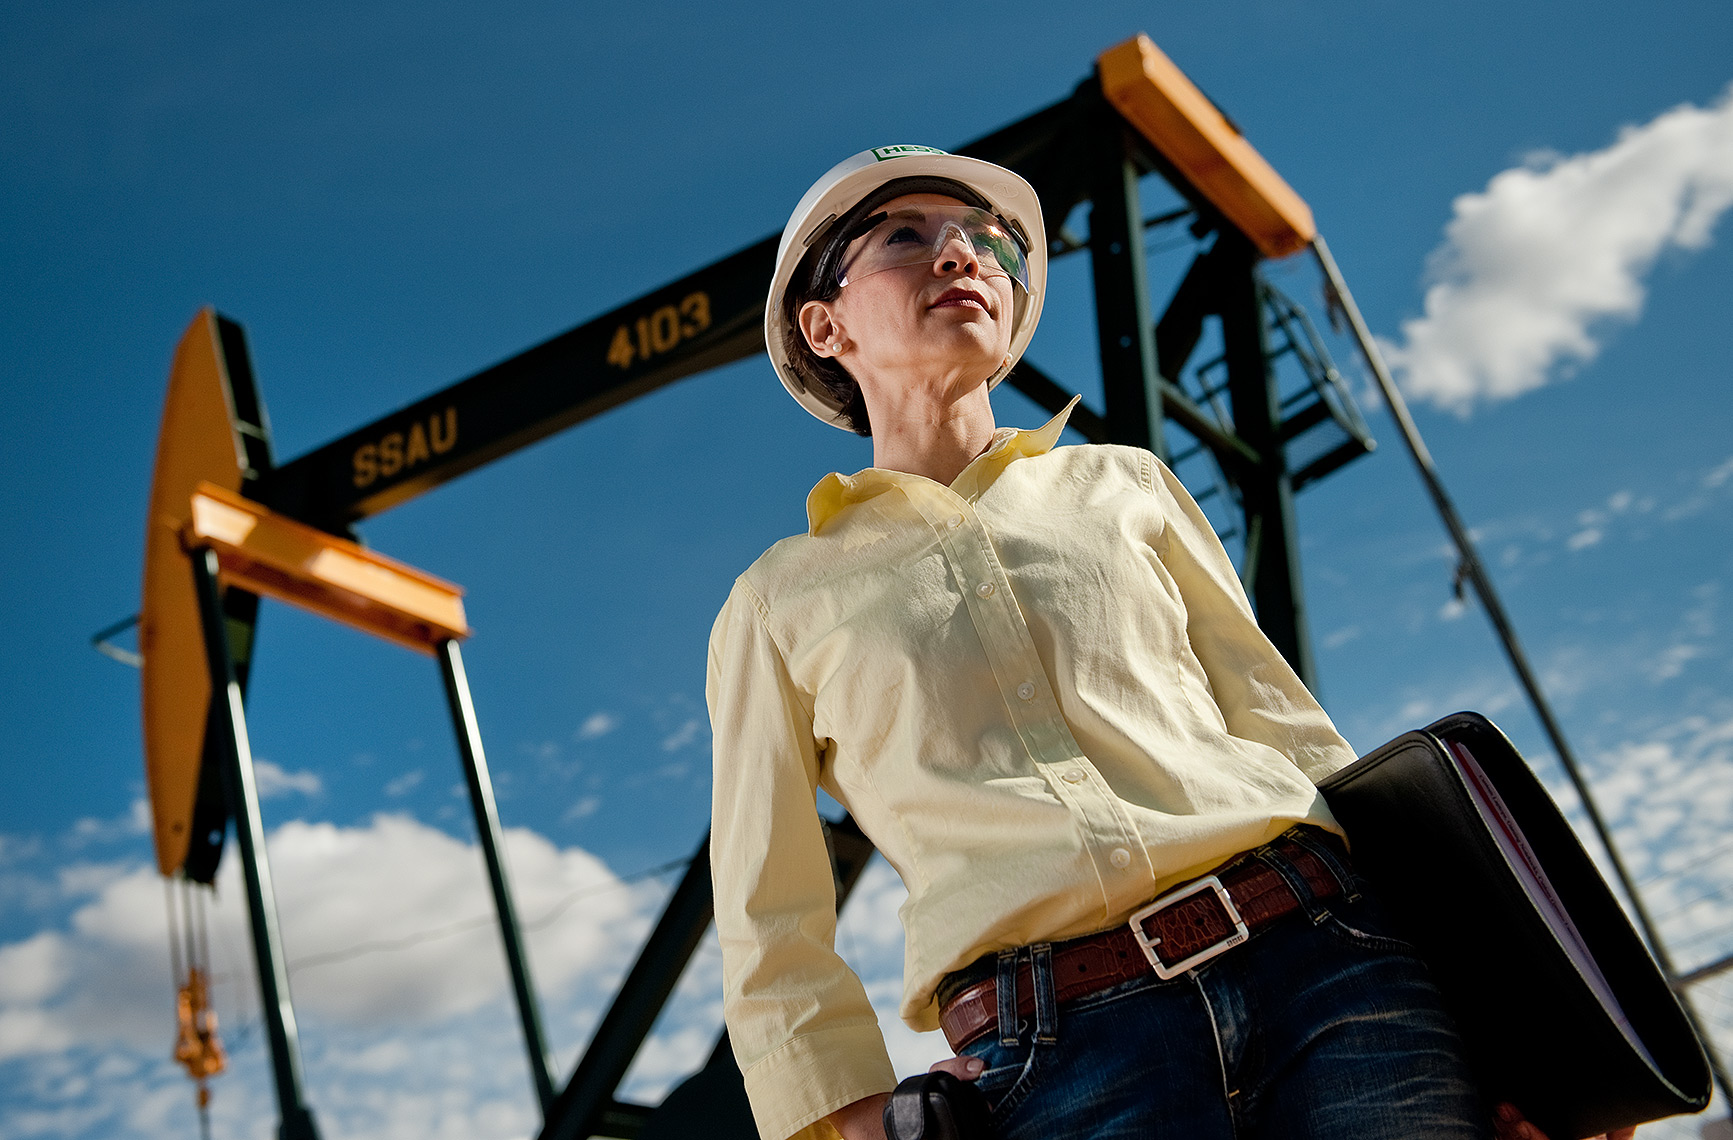 Oilfield Engineer Portrait